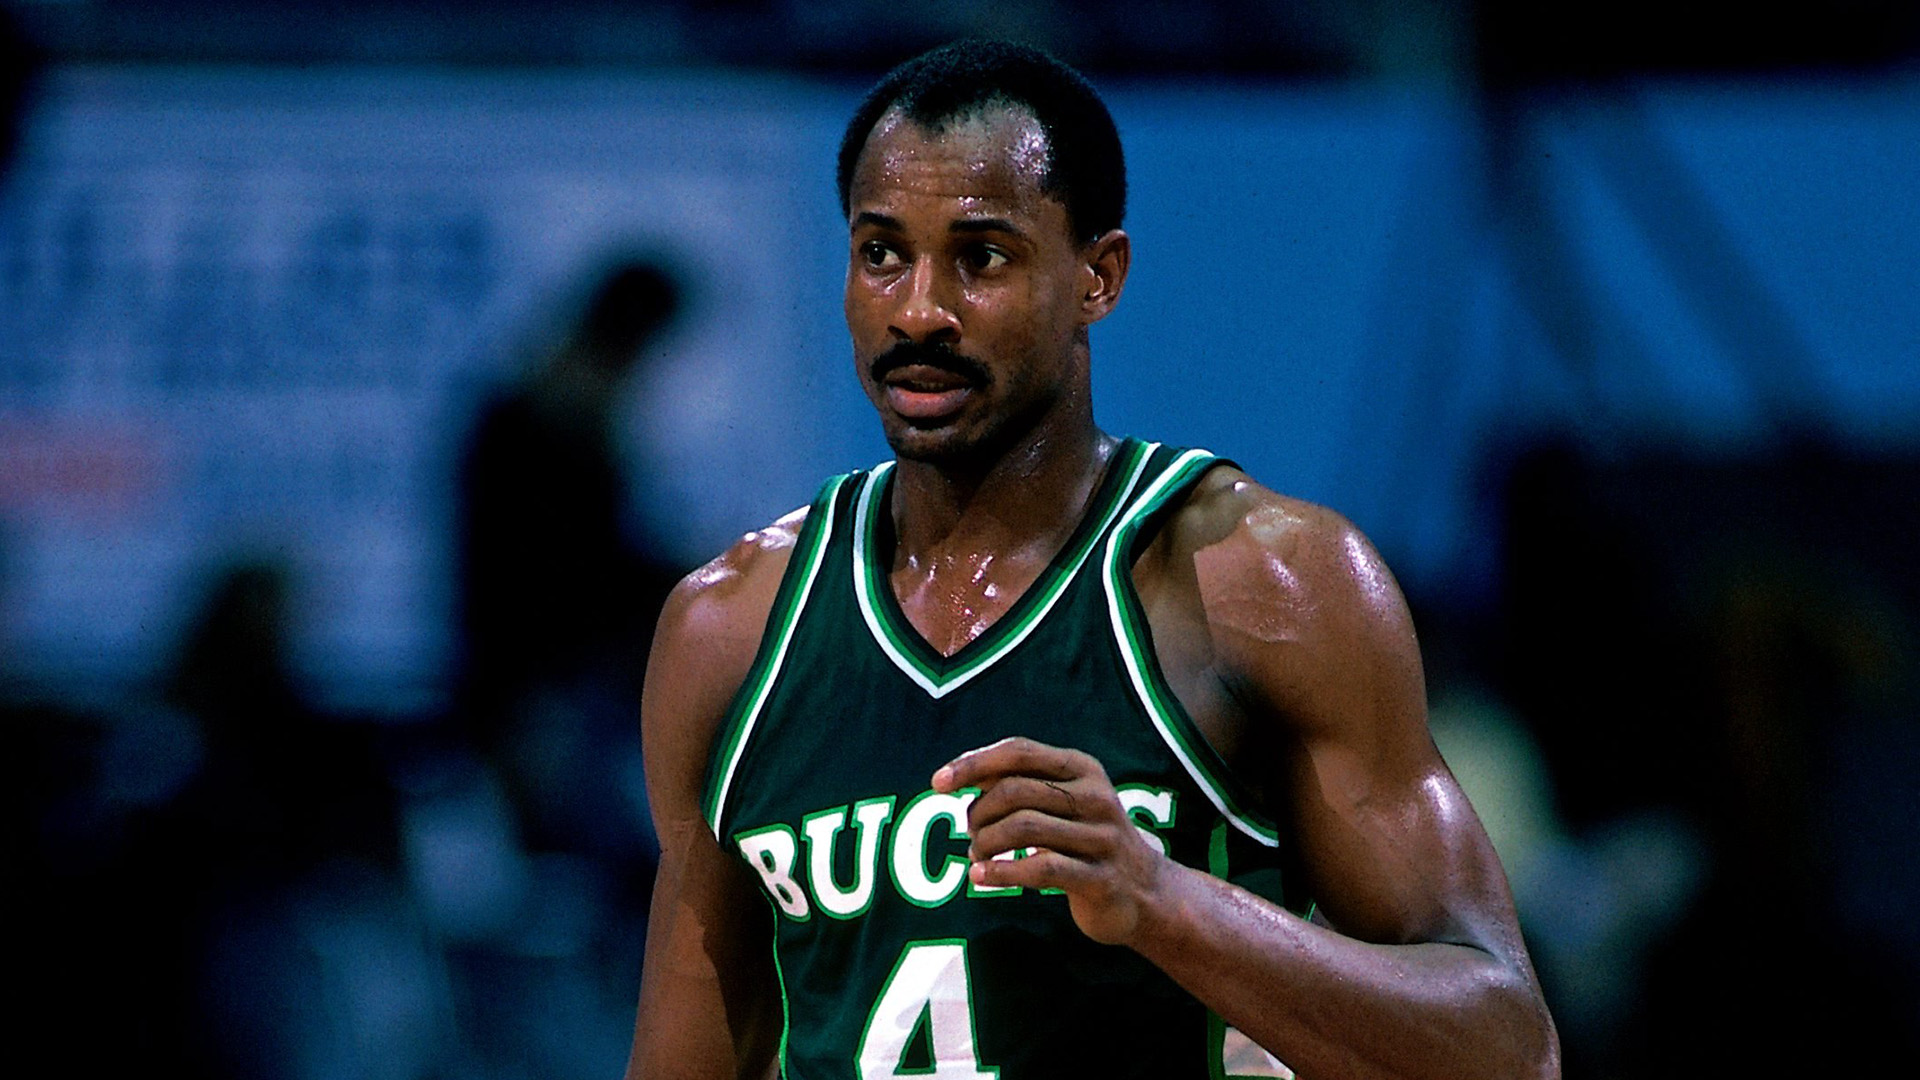 Defensive Player Ladder: Q&A with Sidney Moncrief, the NBA's first Defensive Player of the Year